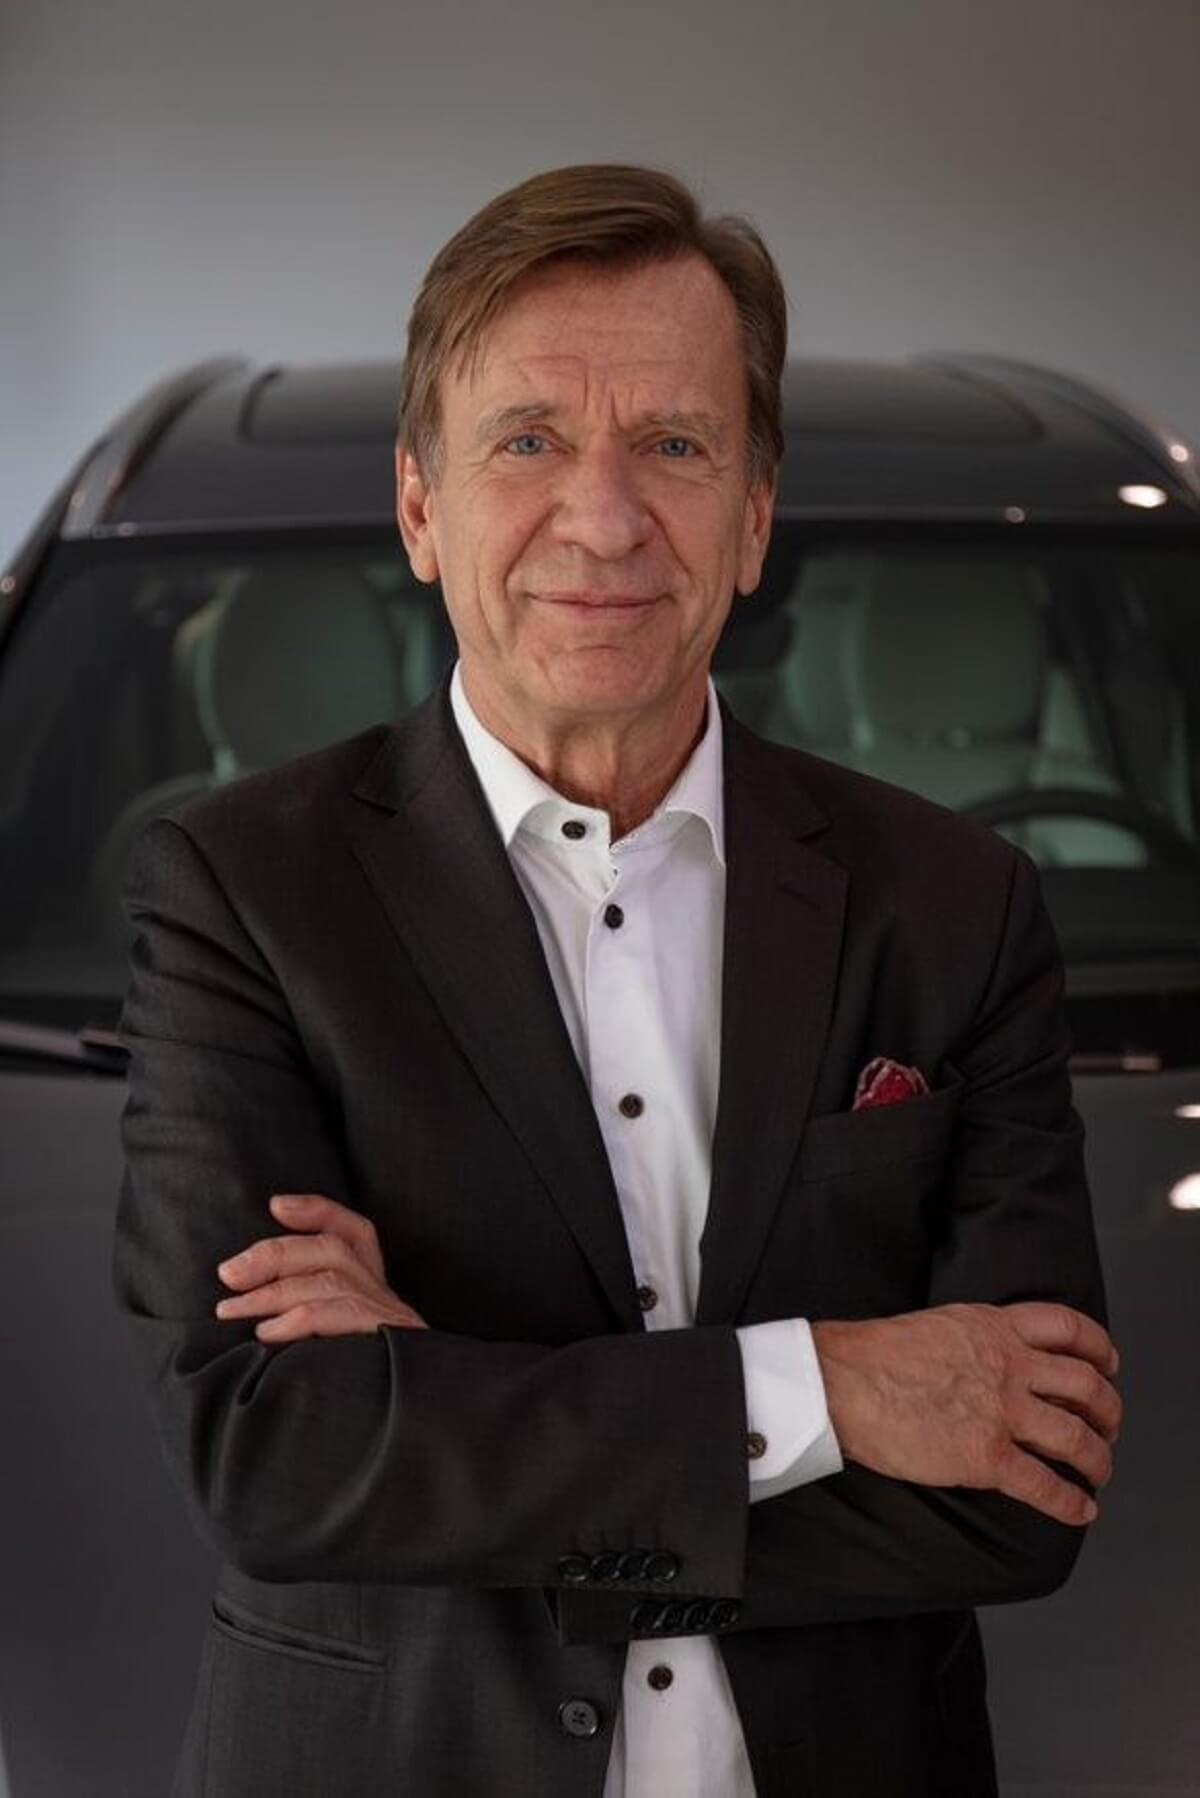 249364_H_kan_Samuelsson_Volvo_Cars_President_Chief_Executive.jpg